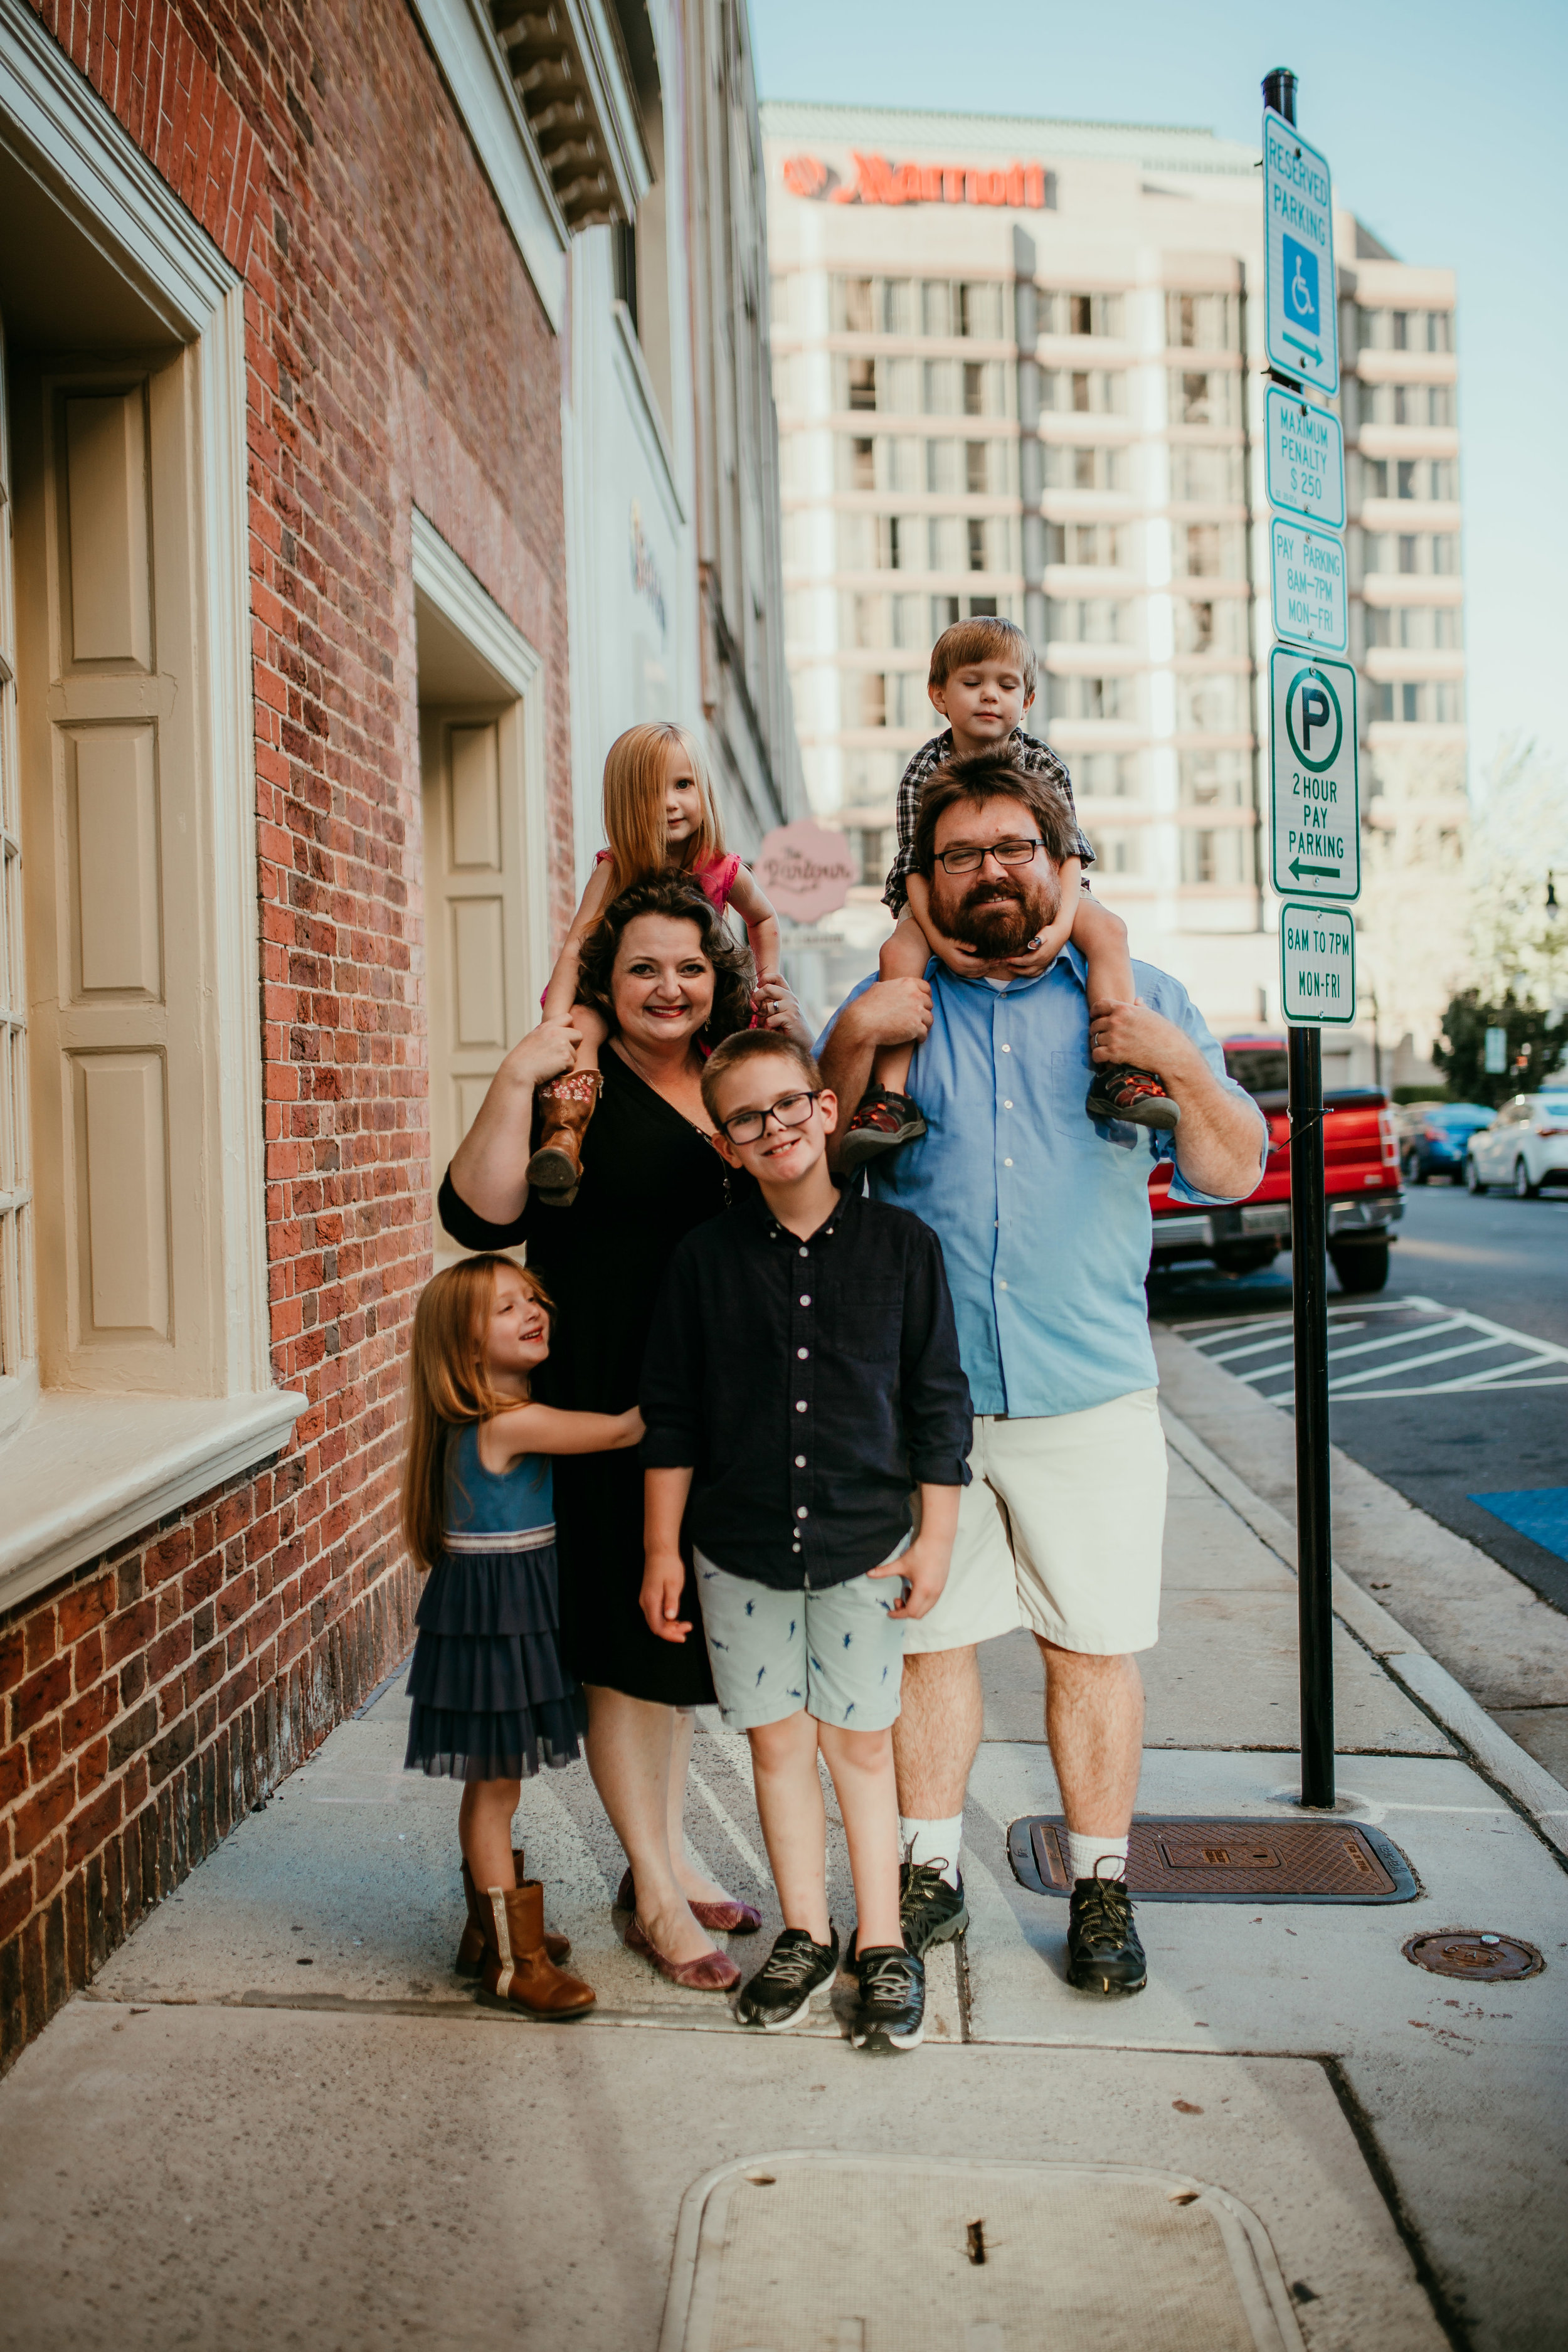 a sweet full family moment on the streets of downtown durham, NC during a fun family photography session | Hanna Hill photography | Raleigh birth and family photographer